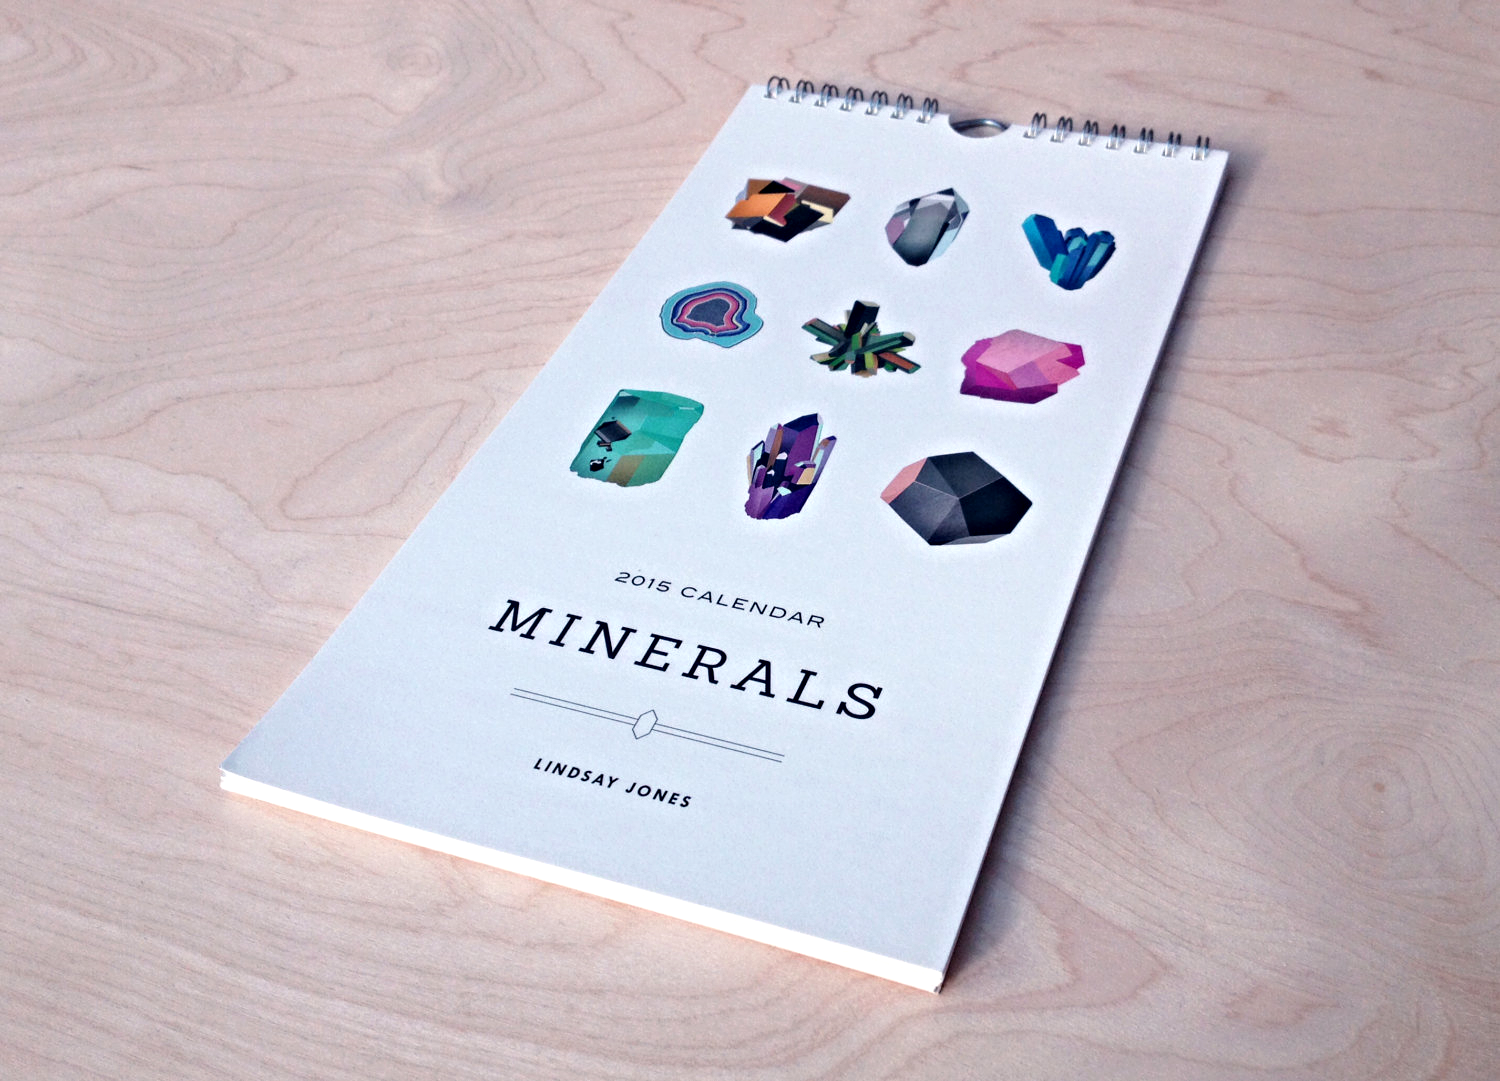 Minerals and Gems Calendar (13 Midwest Made Calendars for 2015 - The Midwestival)